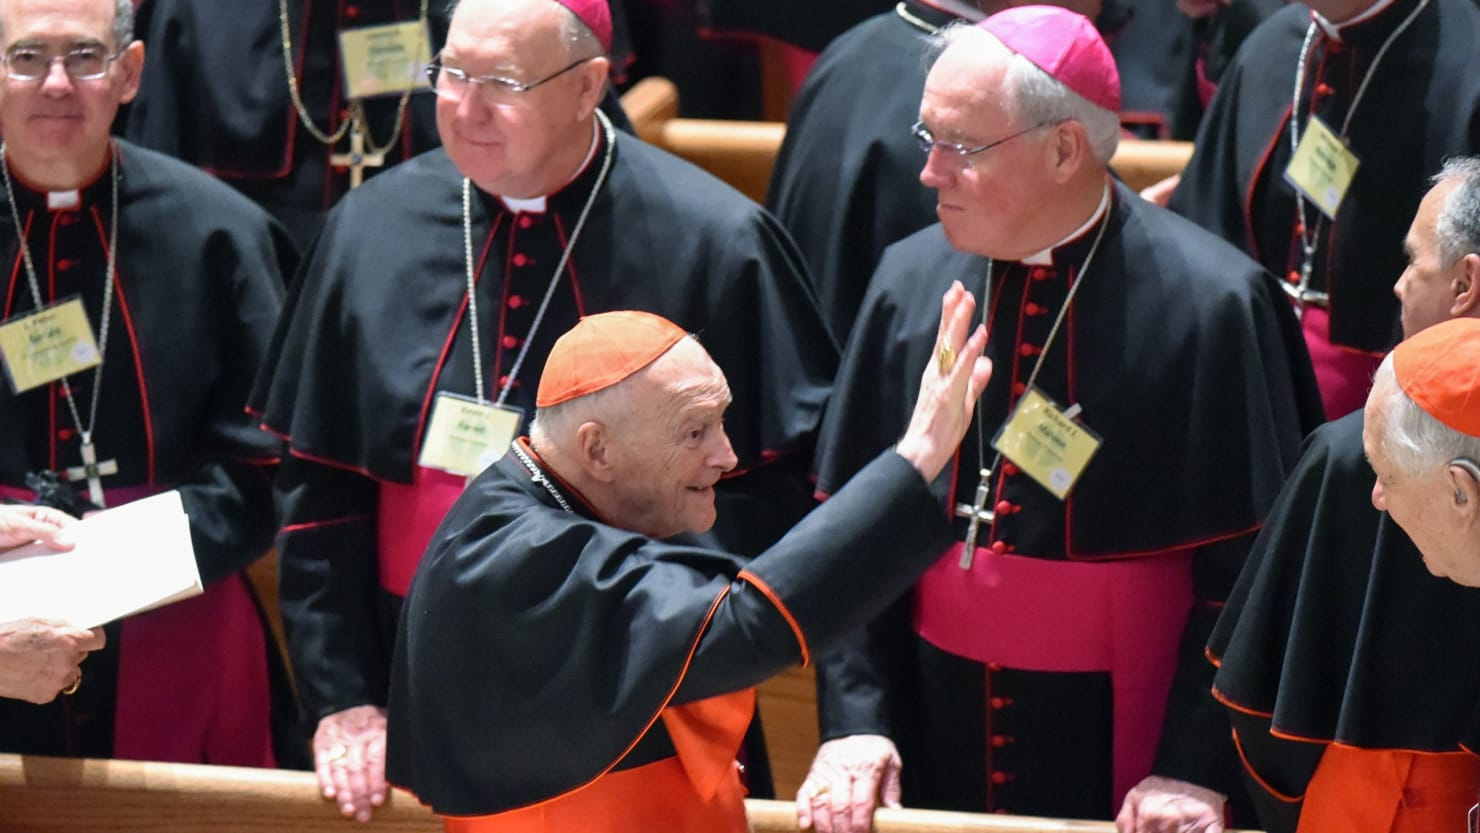 Vatican was warned of disgraced cardinal